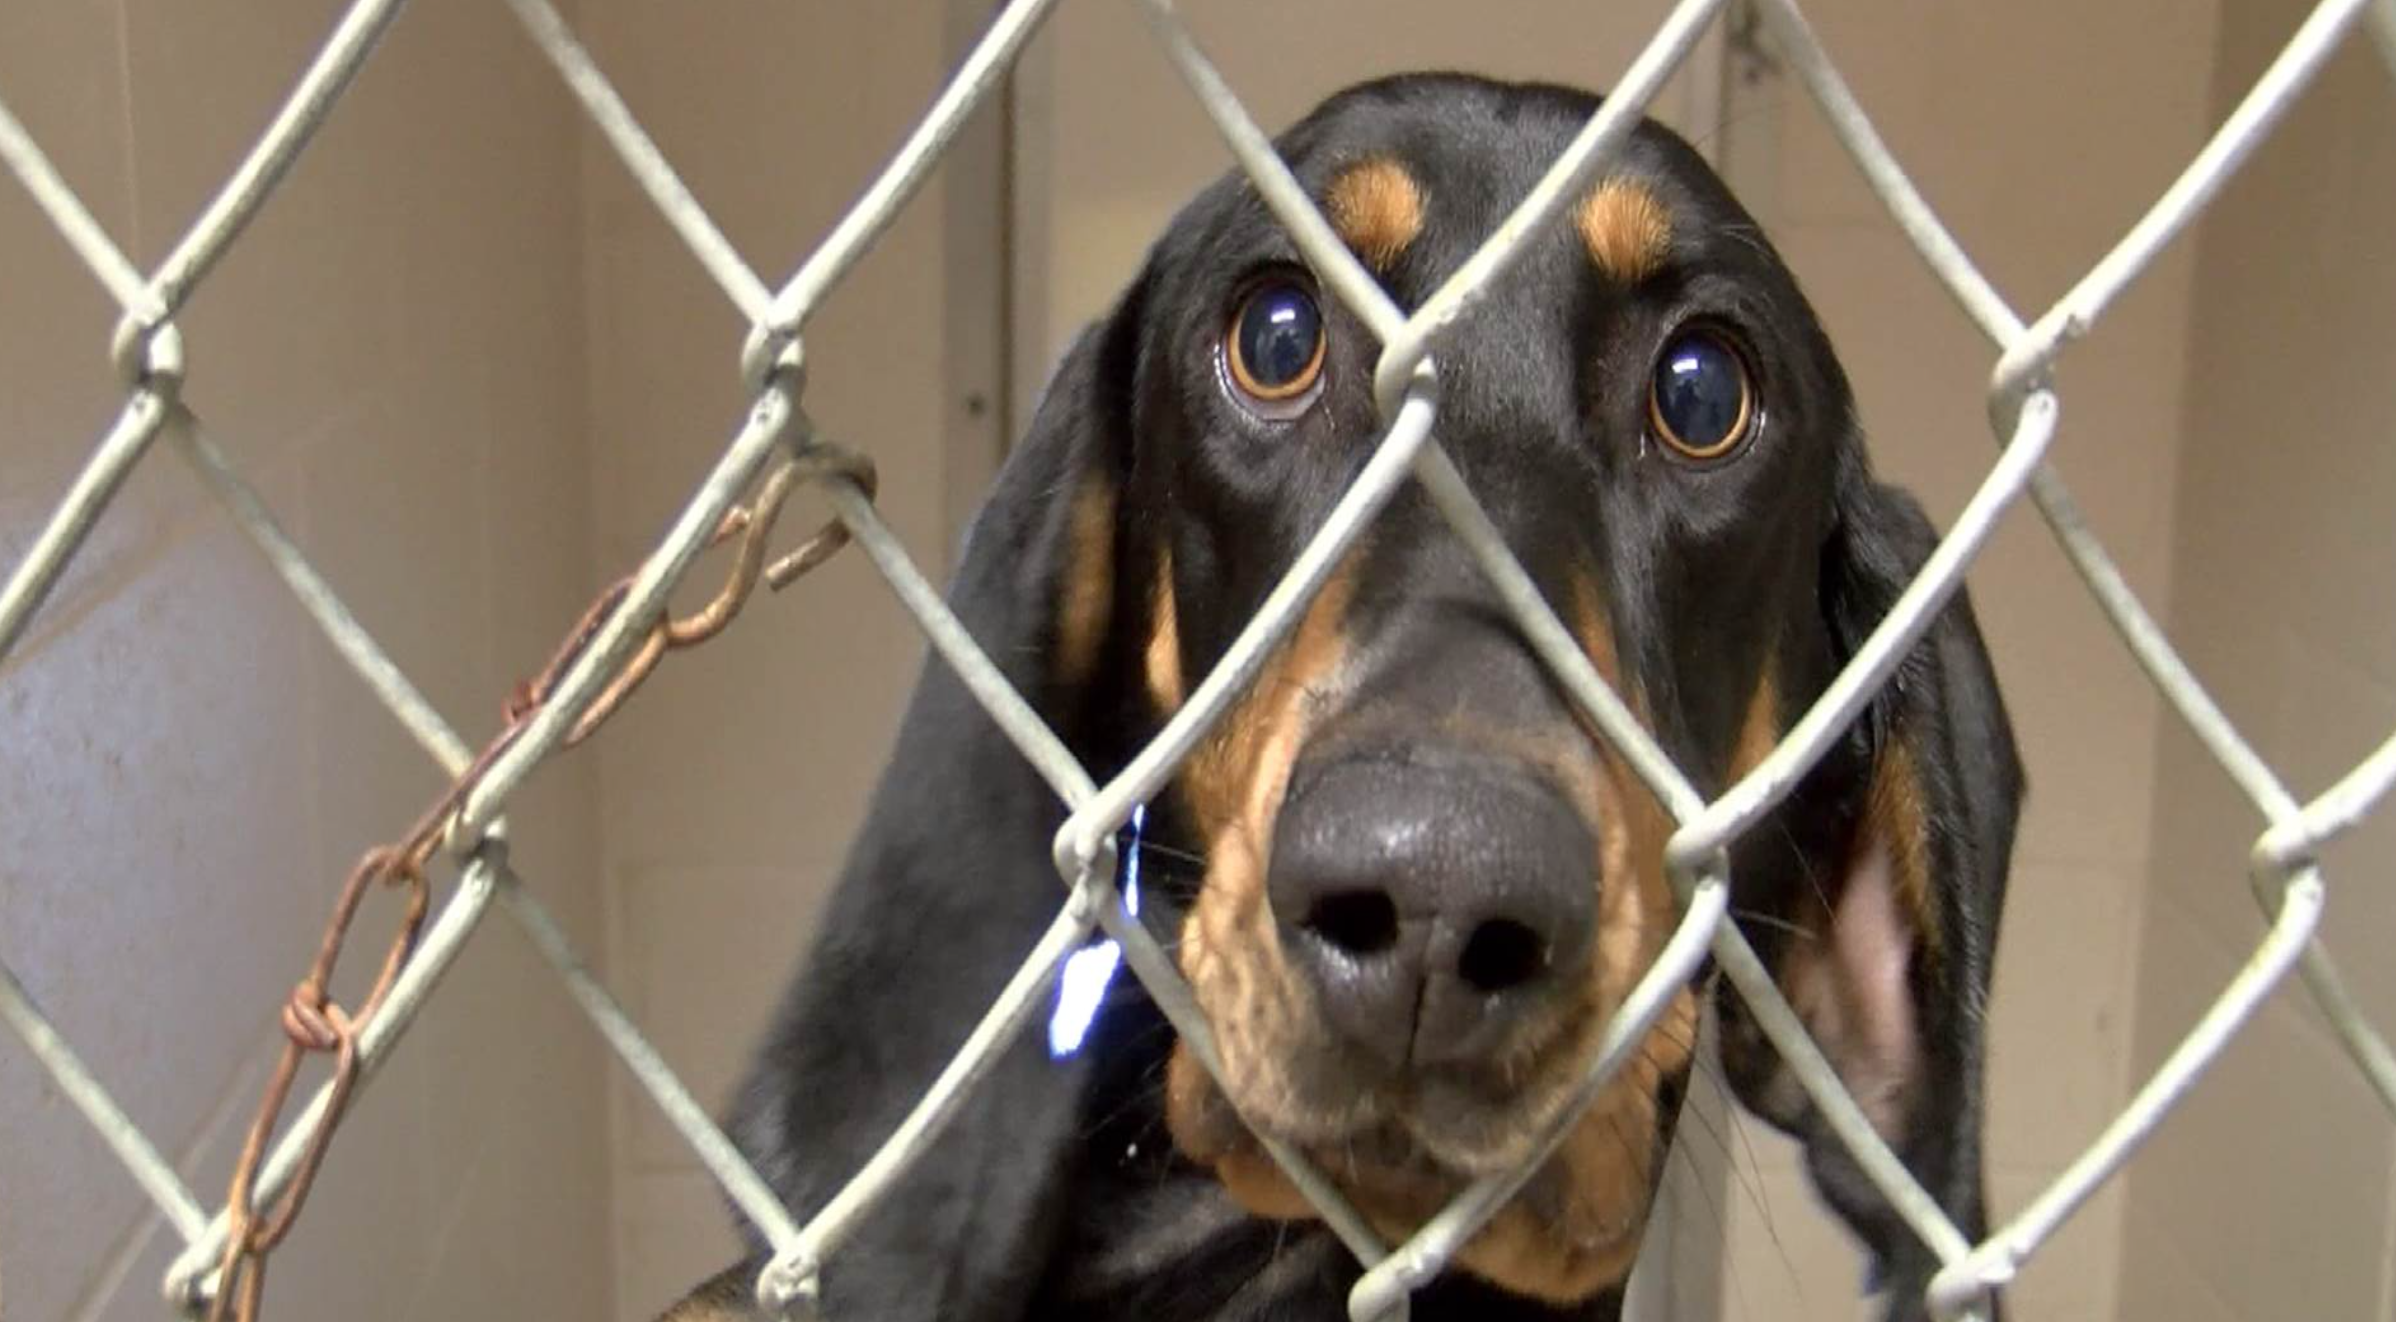 Animals from Texas were kept in the Louisiana shelters to be close if owners looking for their pet came forward. Now they are looking to find them a forever home in northern Michigan.